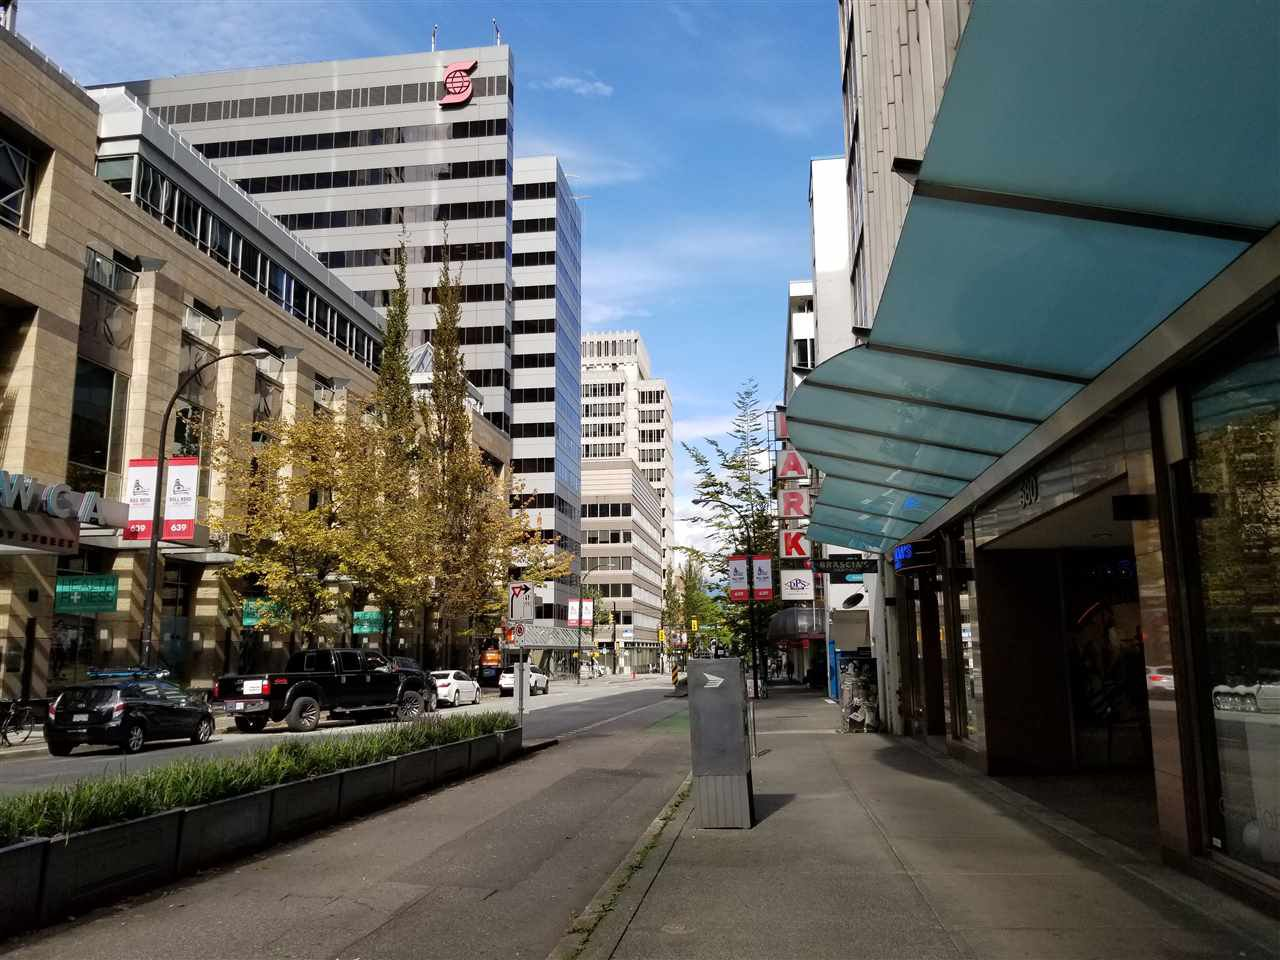 Main Photo: 530 HORNBY Street in Vancouver: Downtown VW Business for sale (Vancouver West)  : MLS®# C8034351